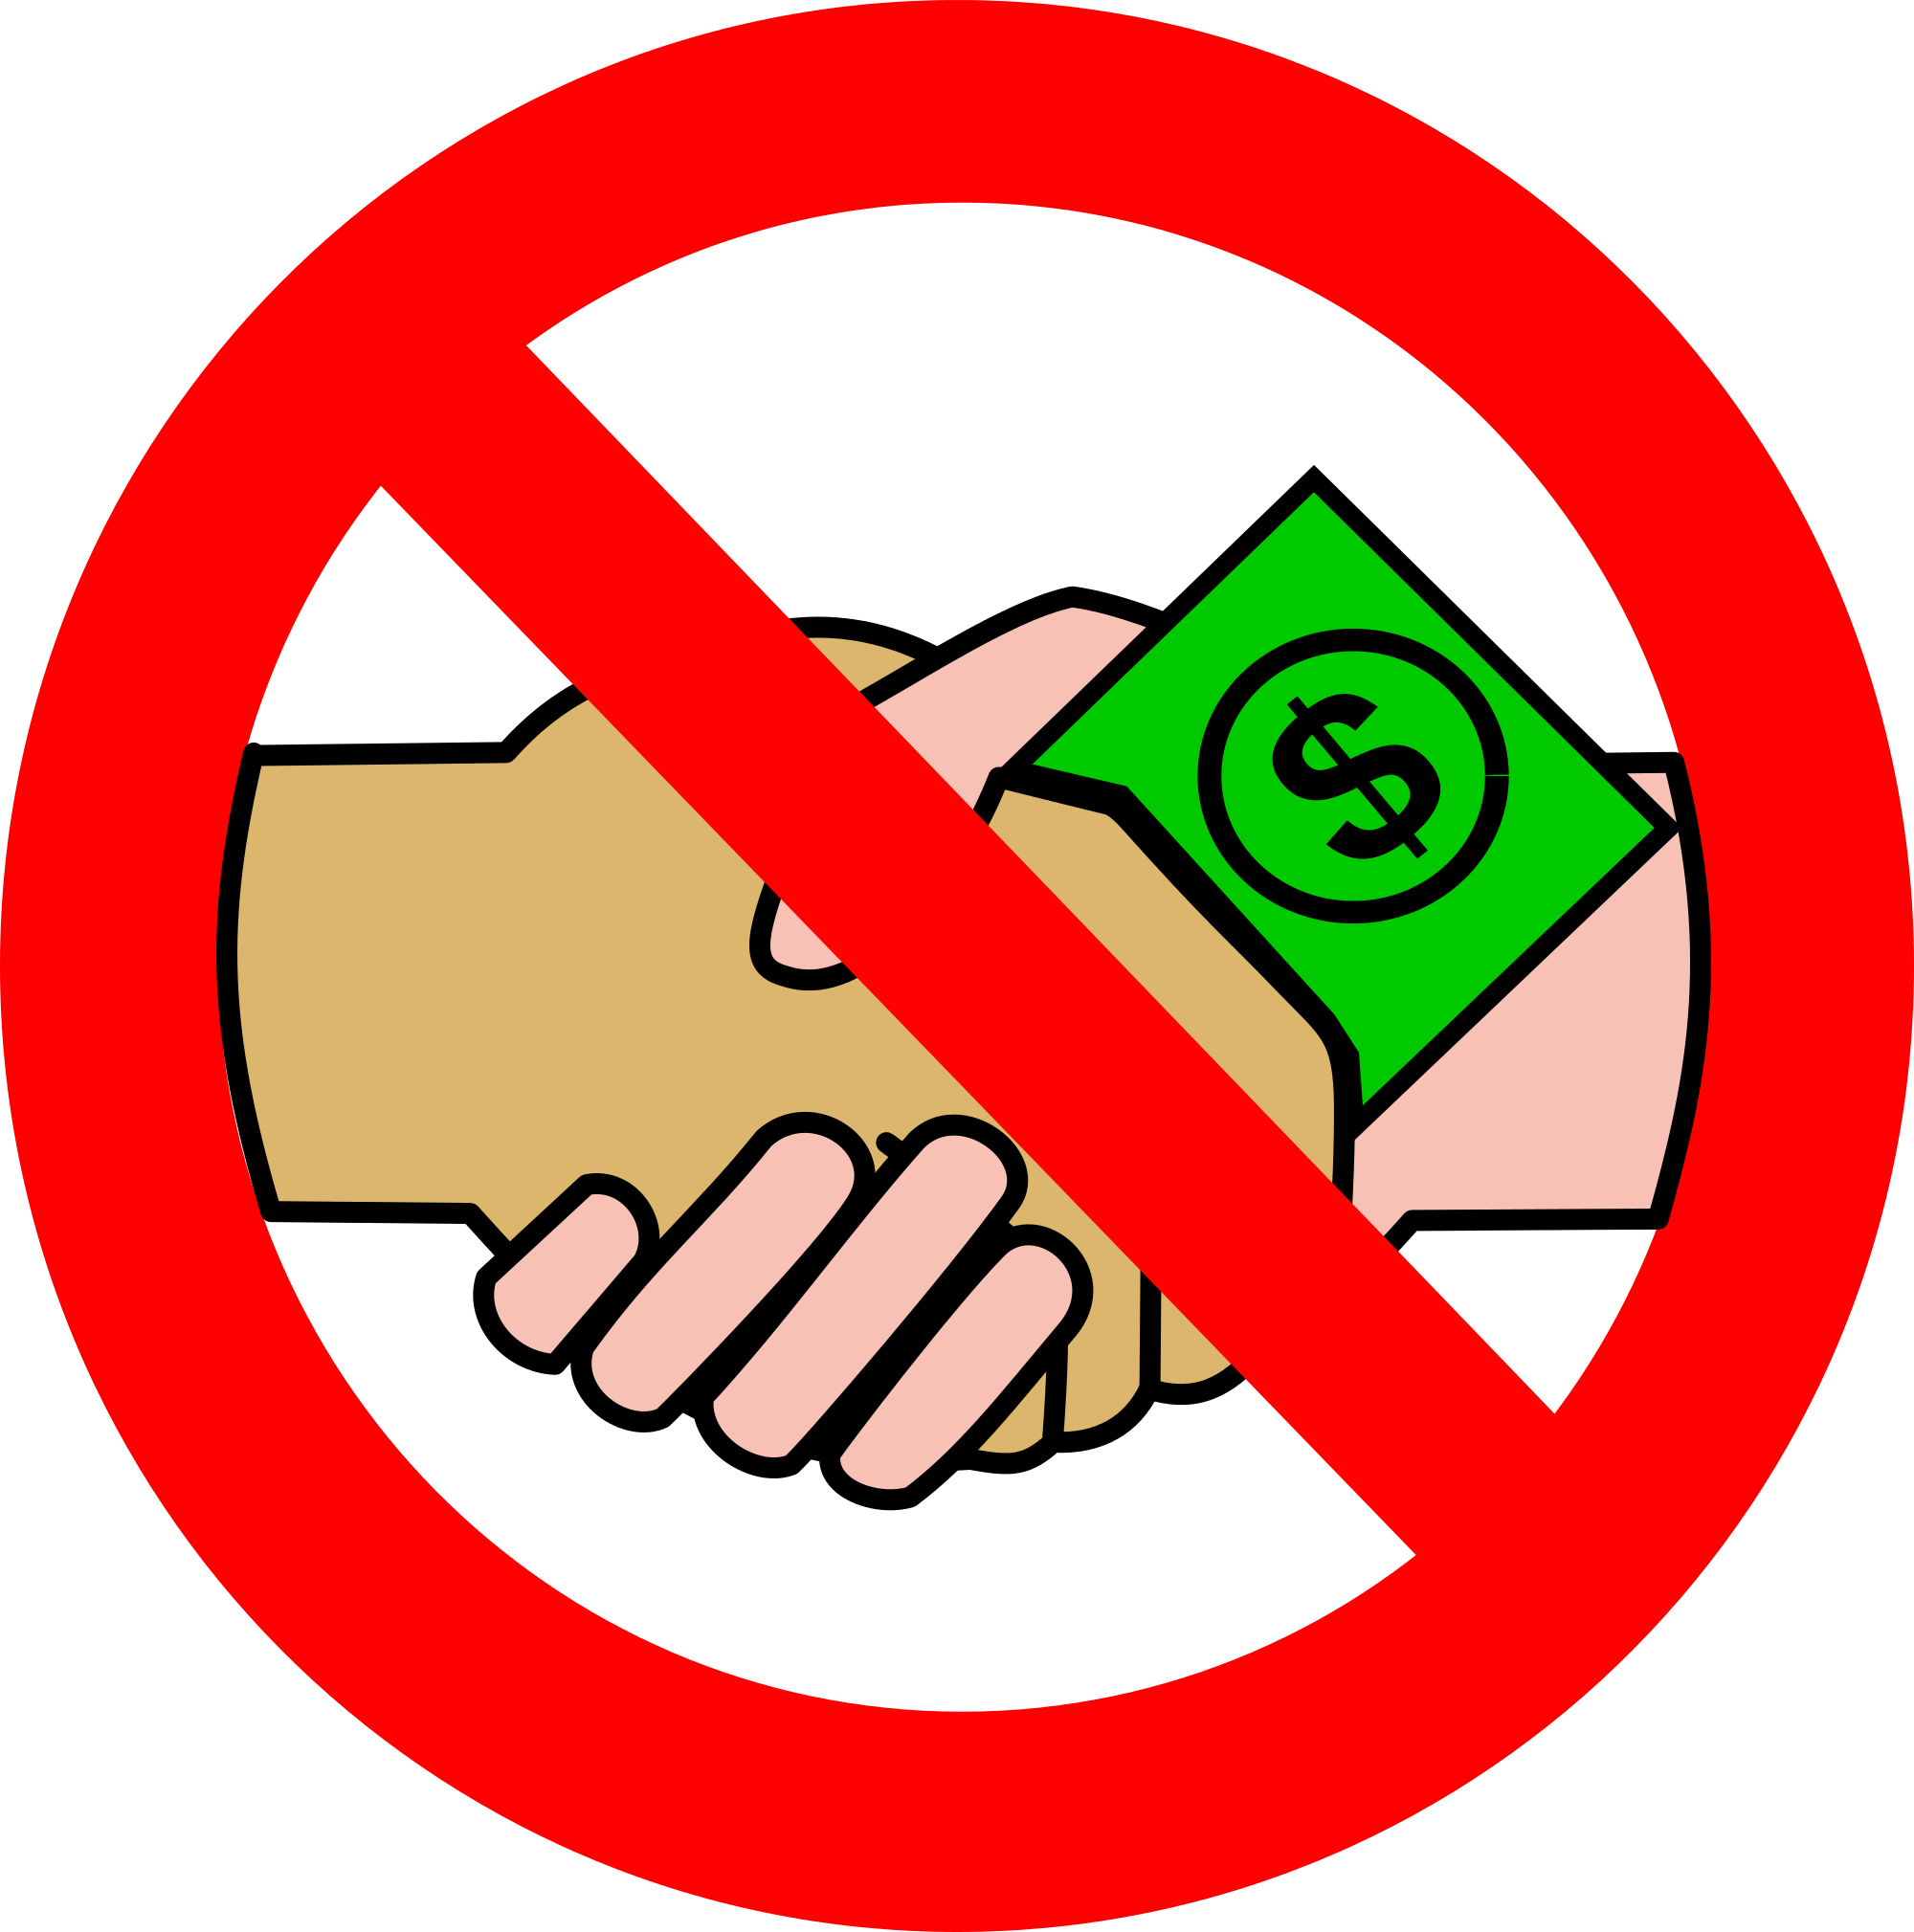 No money clipart free png black and white stock File:A no money handshake.svg - Wikimedia Commons png black and white stock